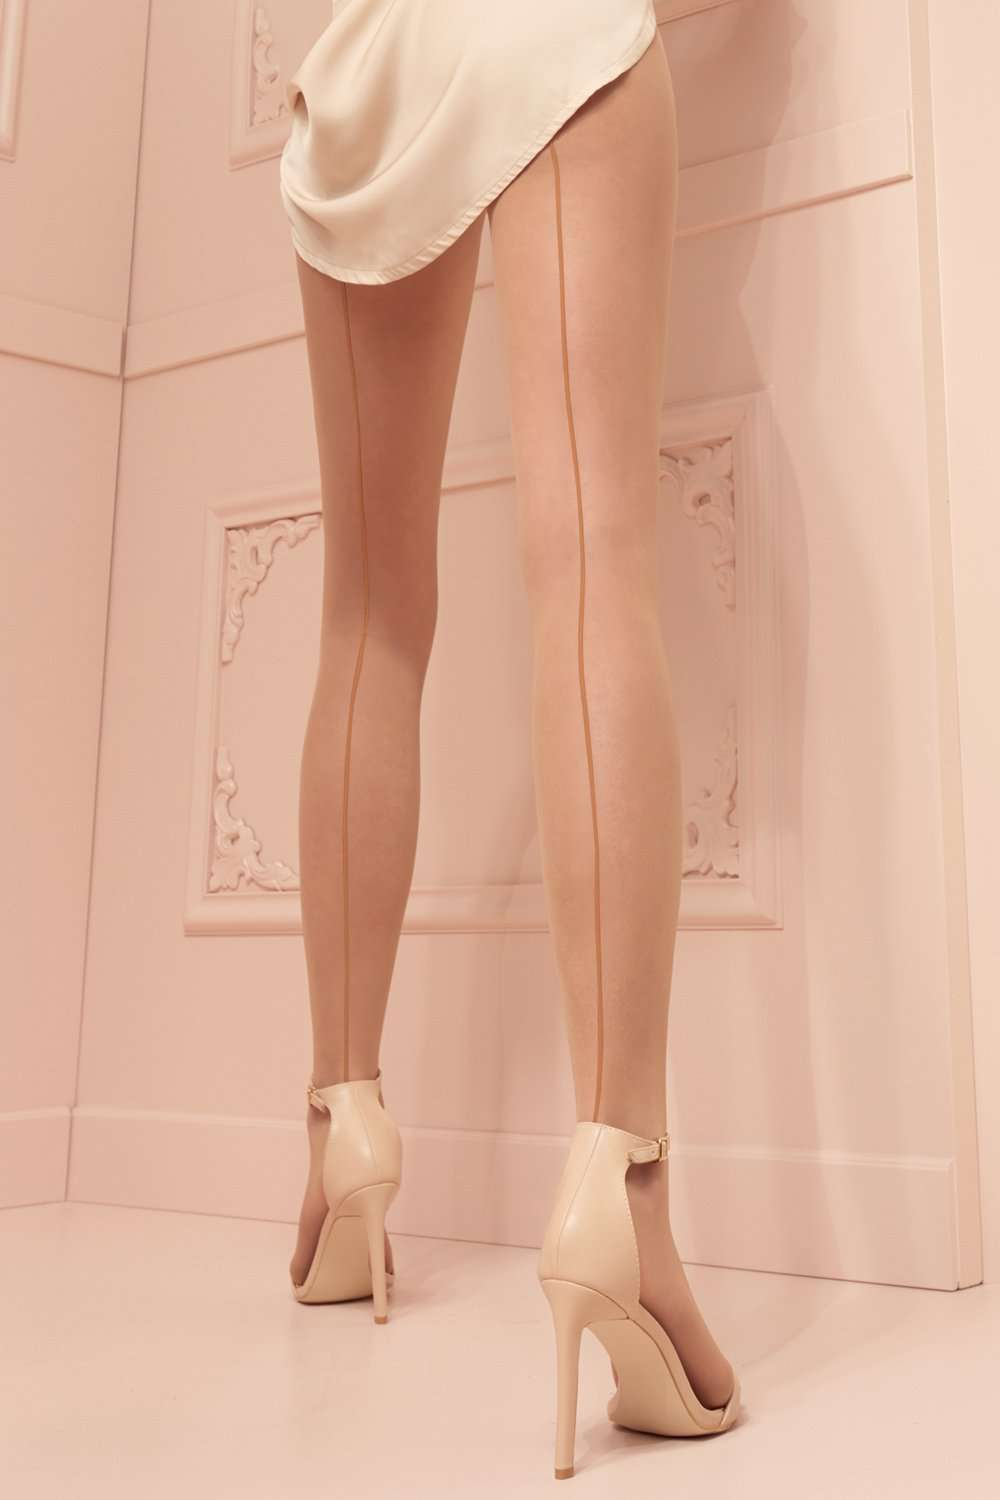 Trasparenze Seamed Tights - Nude Pantyhose - Naughty Knickers